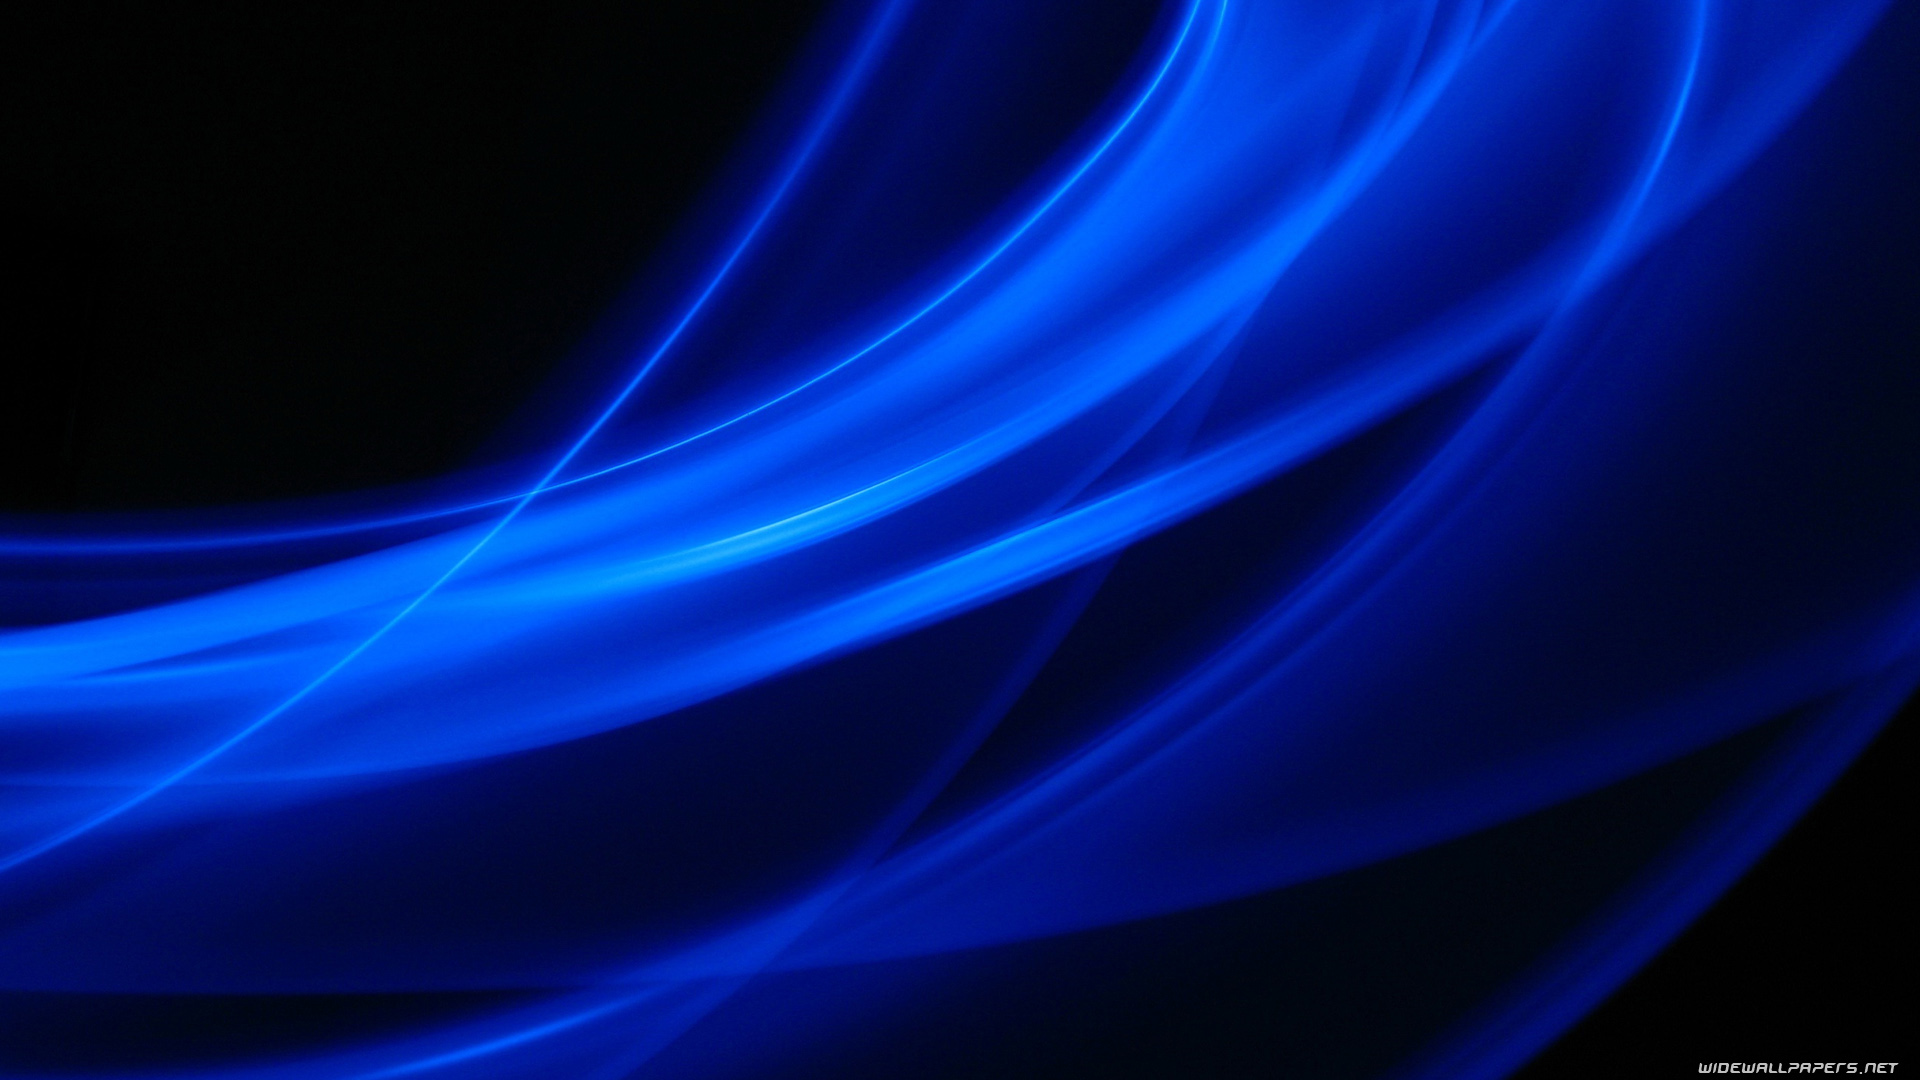 Black and Blue Abstract Widescreen HD Wallpaper 1920x1080